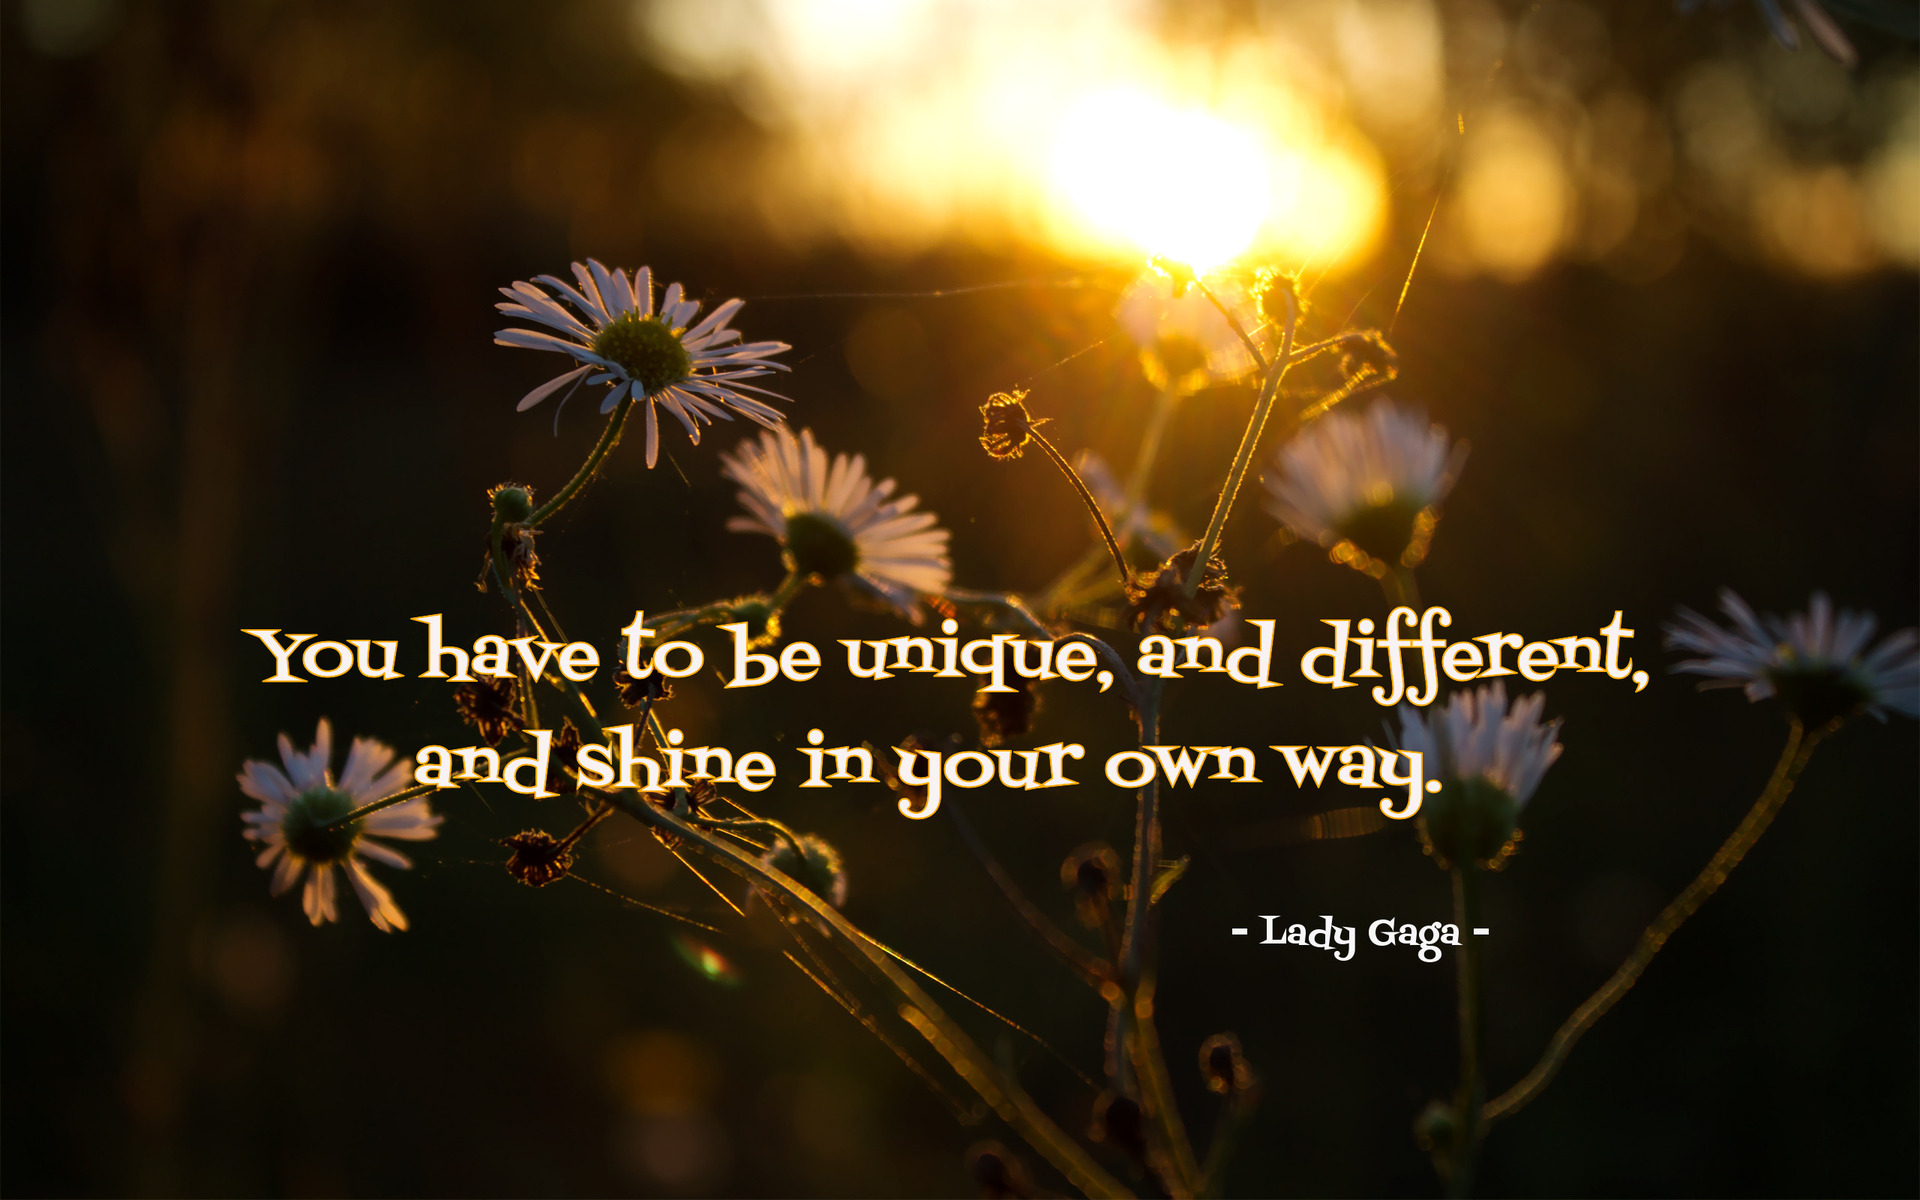 You Have To Be Unique, And Different, And Shine In Your Own Way